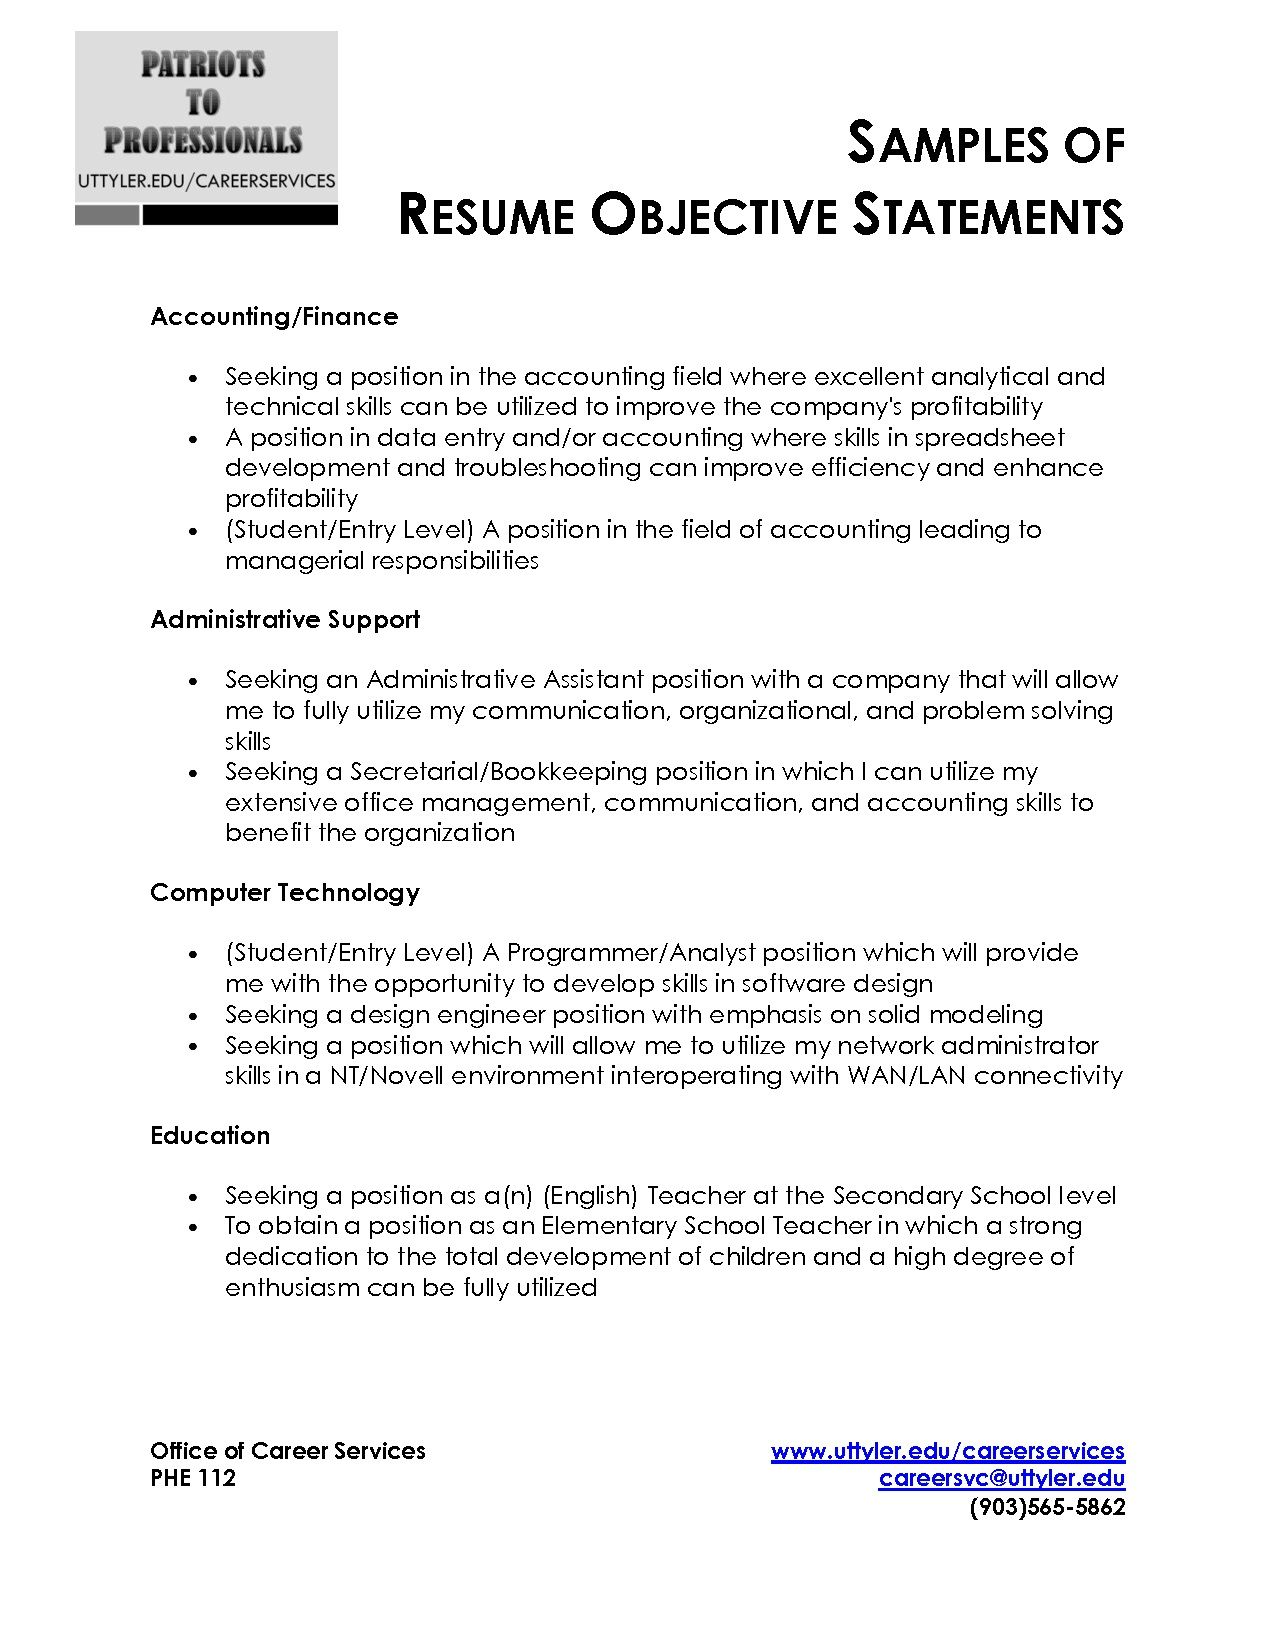 Pin By Hannah Danae On Resume Cover Letter Resume